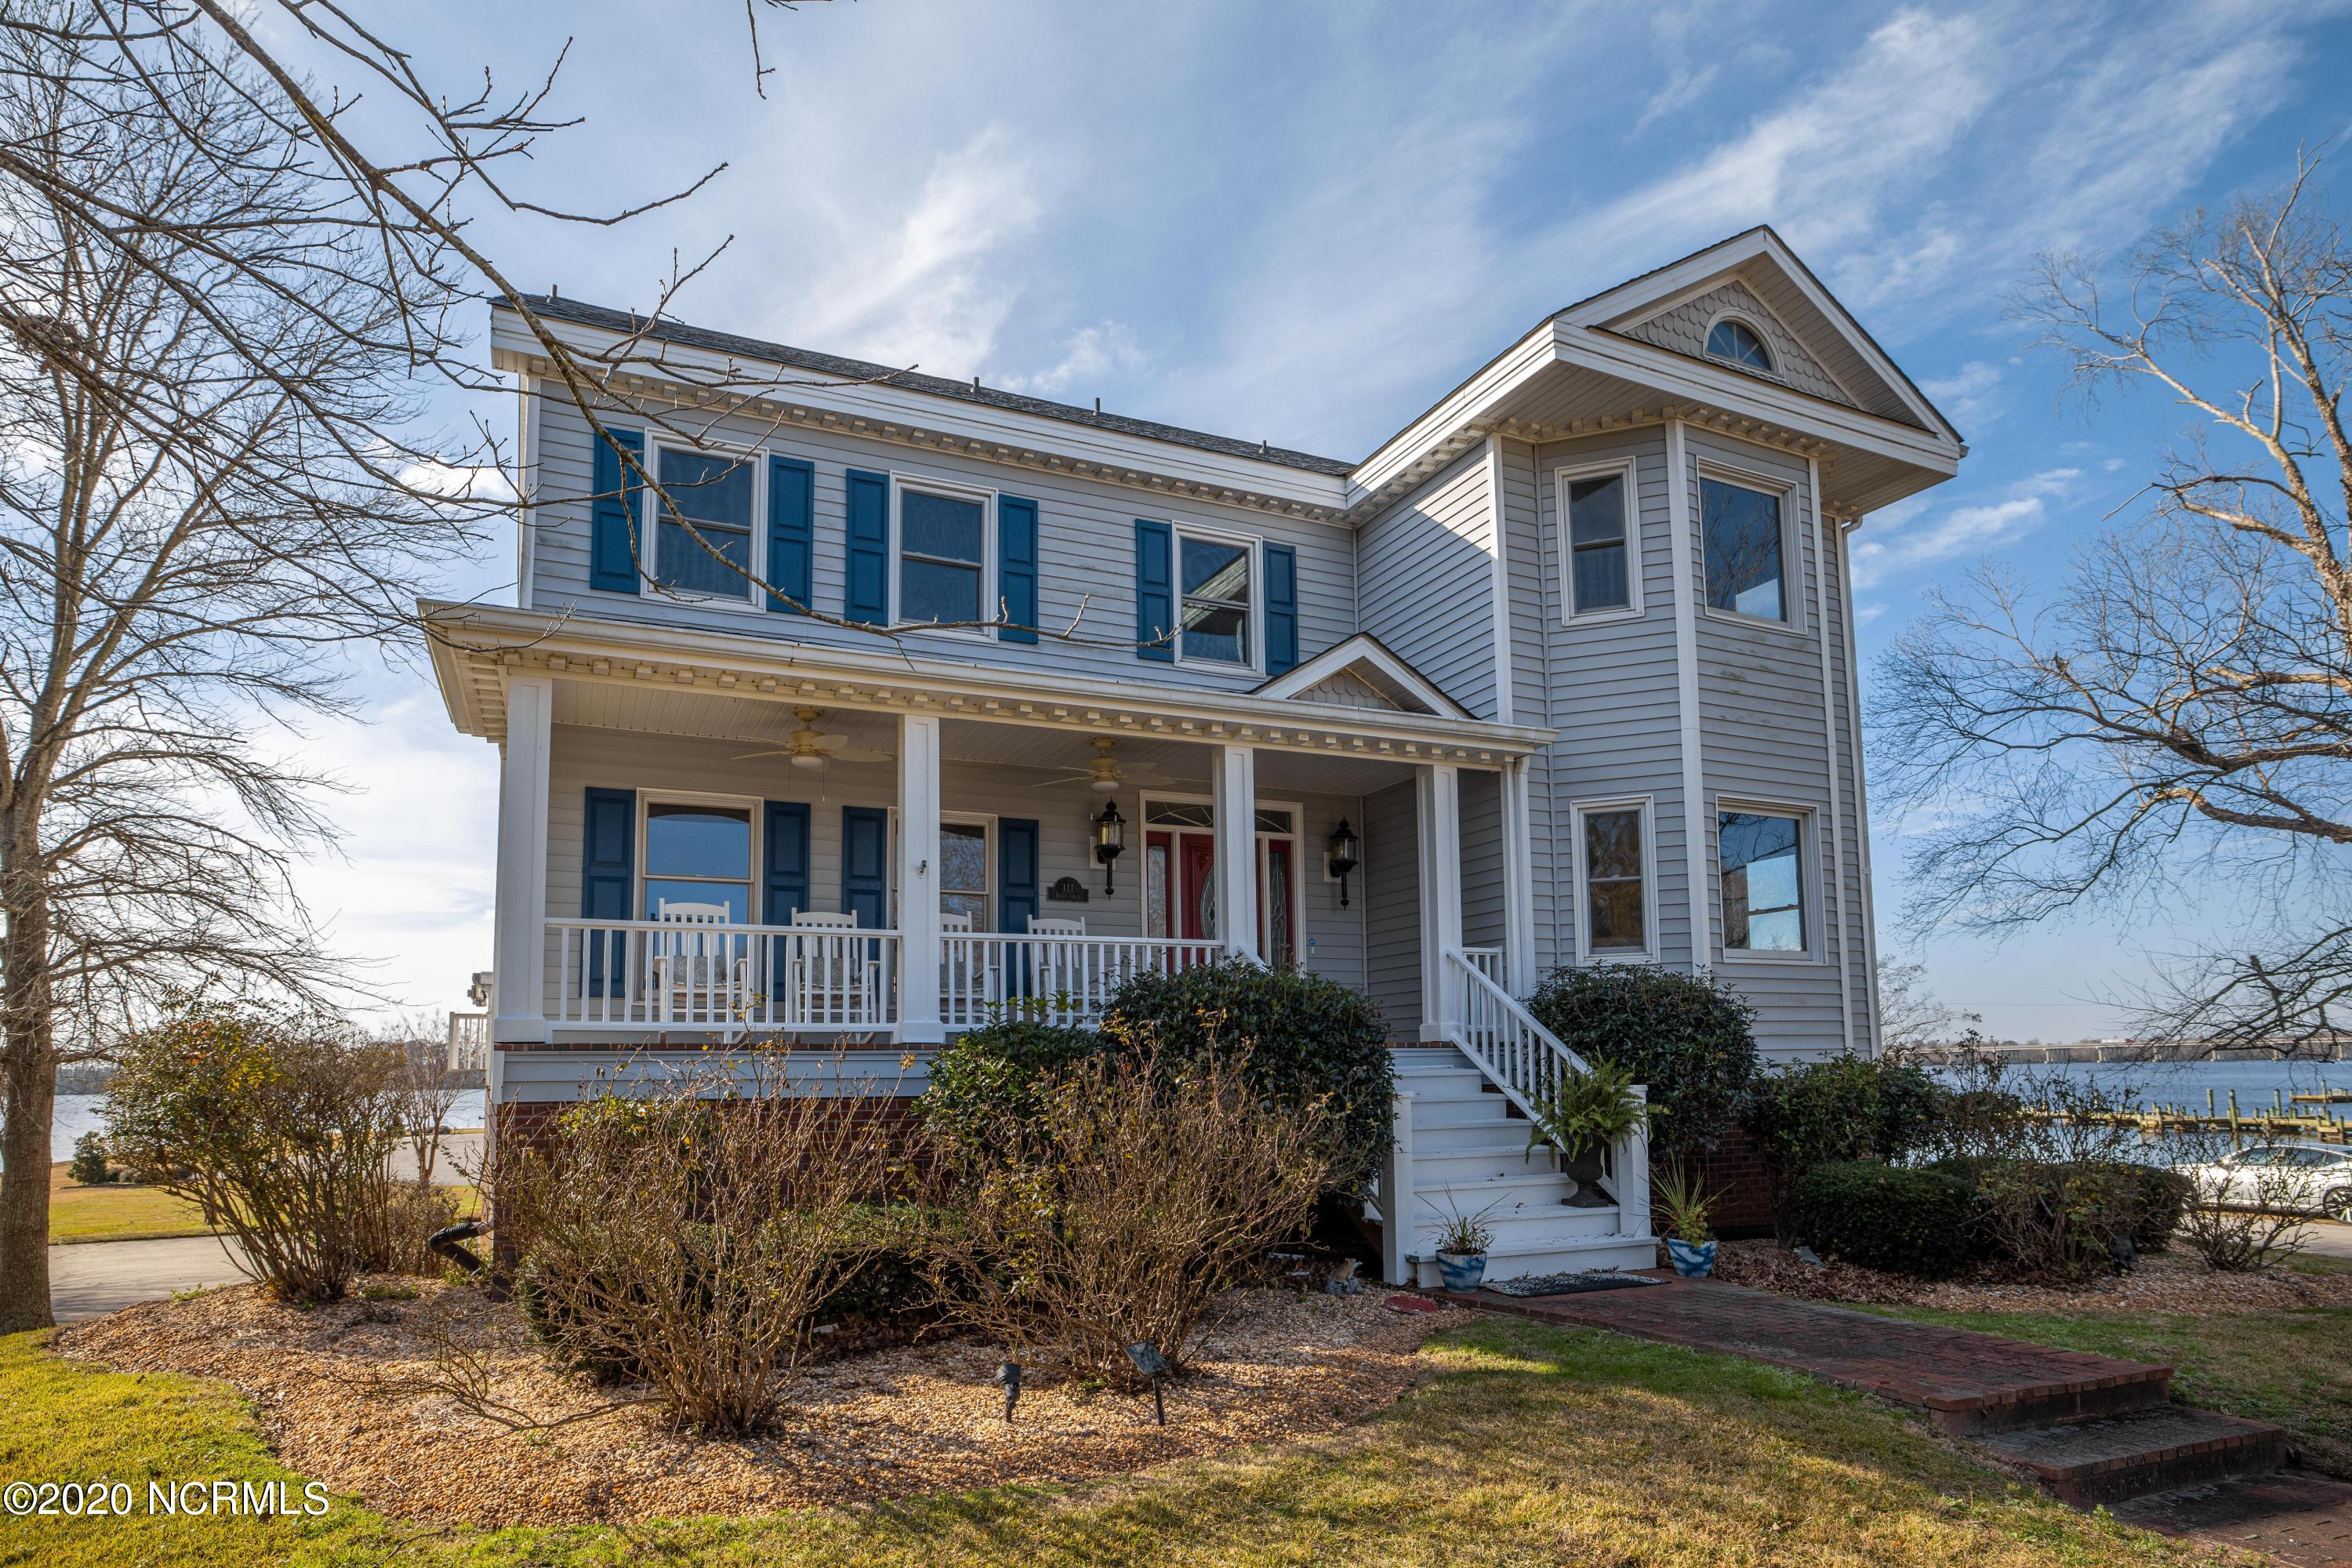 111 River Chase, Washington, North Carolina 27889, 4 Bedrooms Bedrooms, 11 Rooms Rooms,4 BathroomsBathrooms,Single family residence,For sale,River Chase,100249407